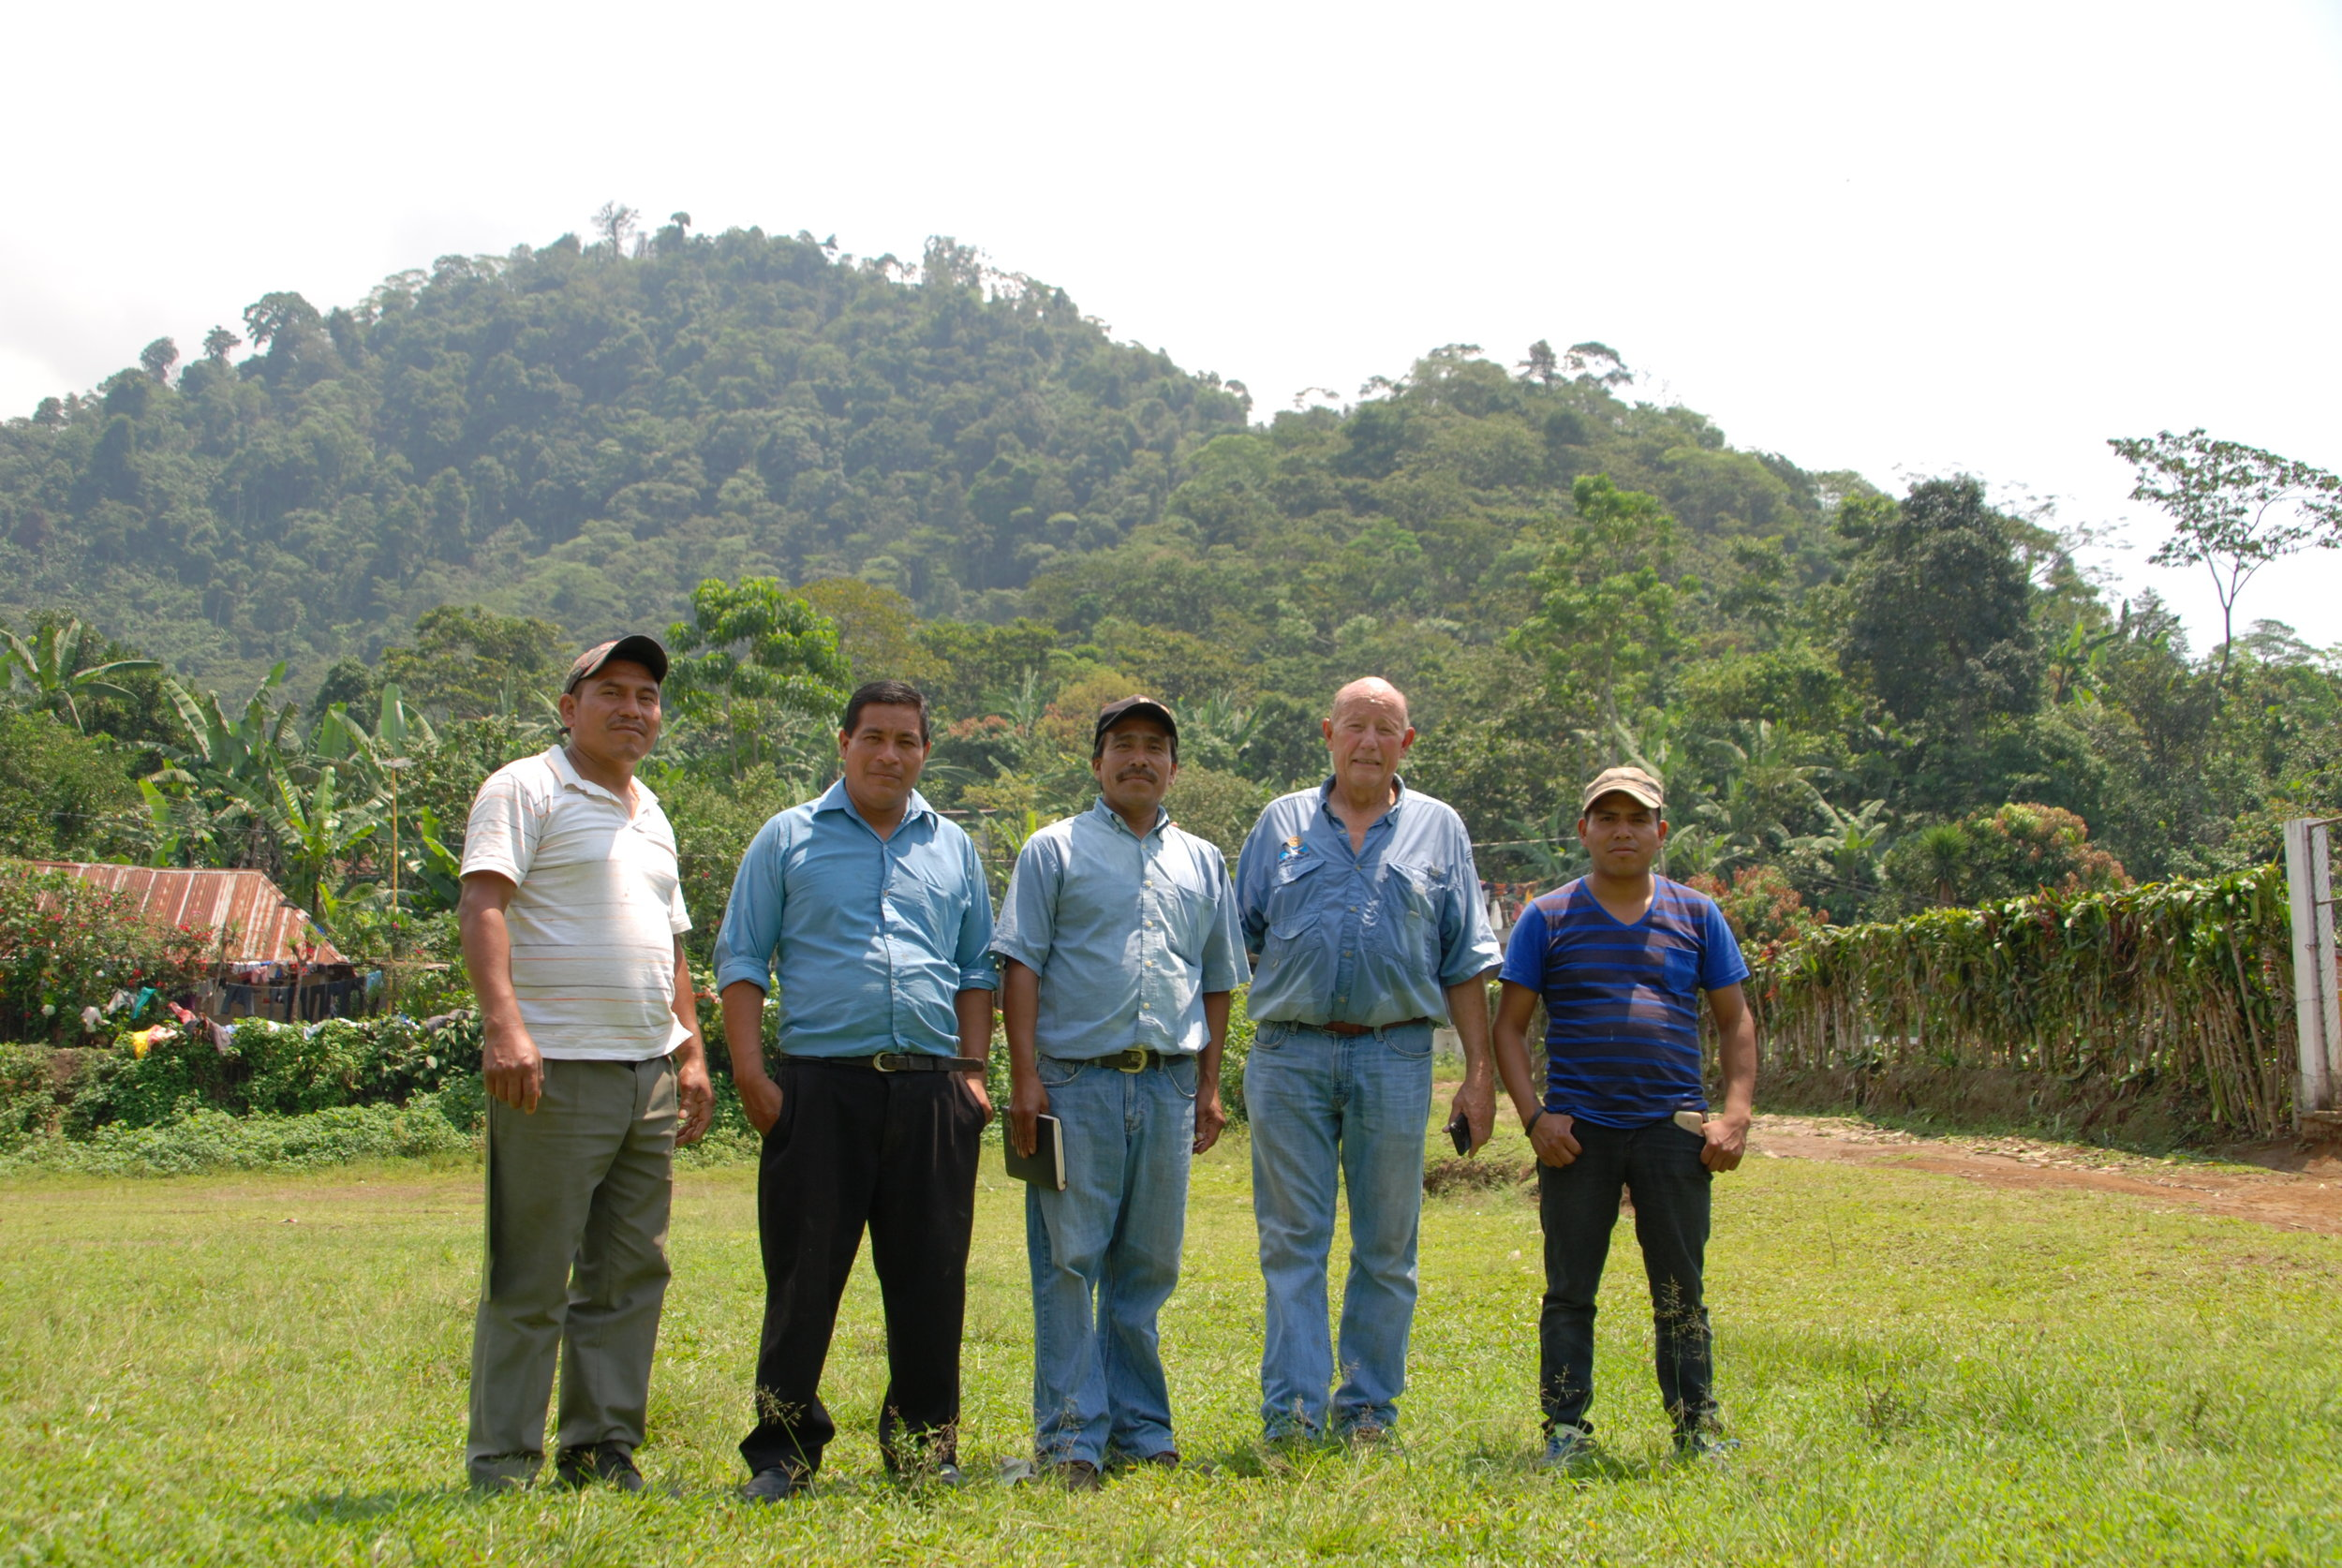 Chet Sadler with four members of La Suiza cooperative